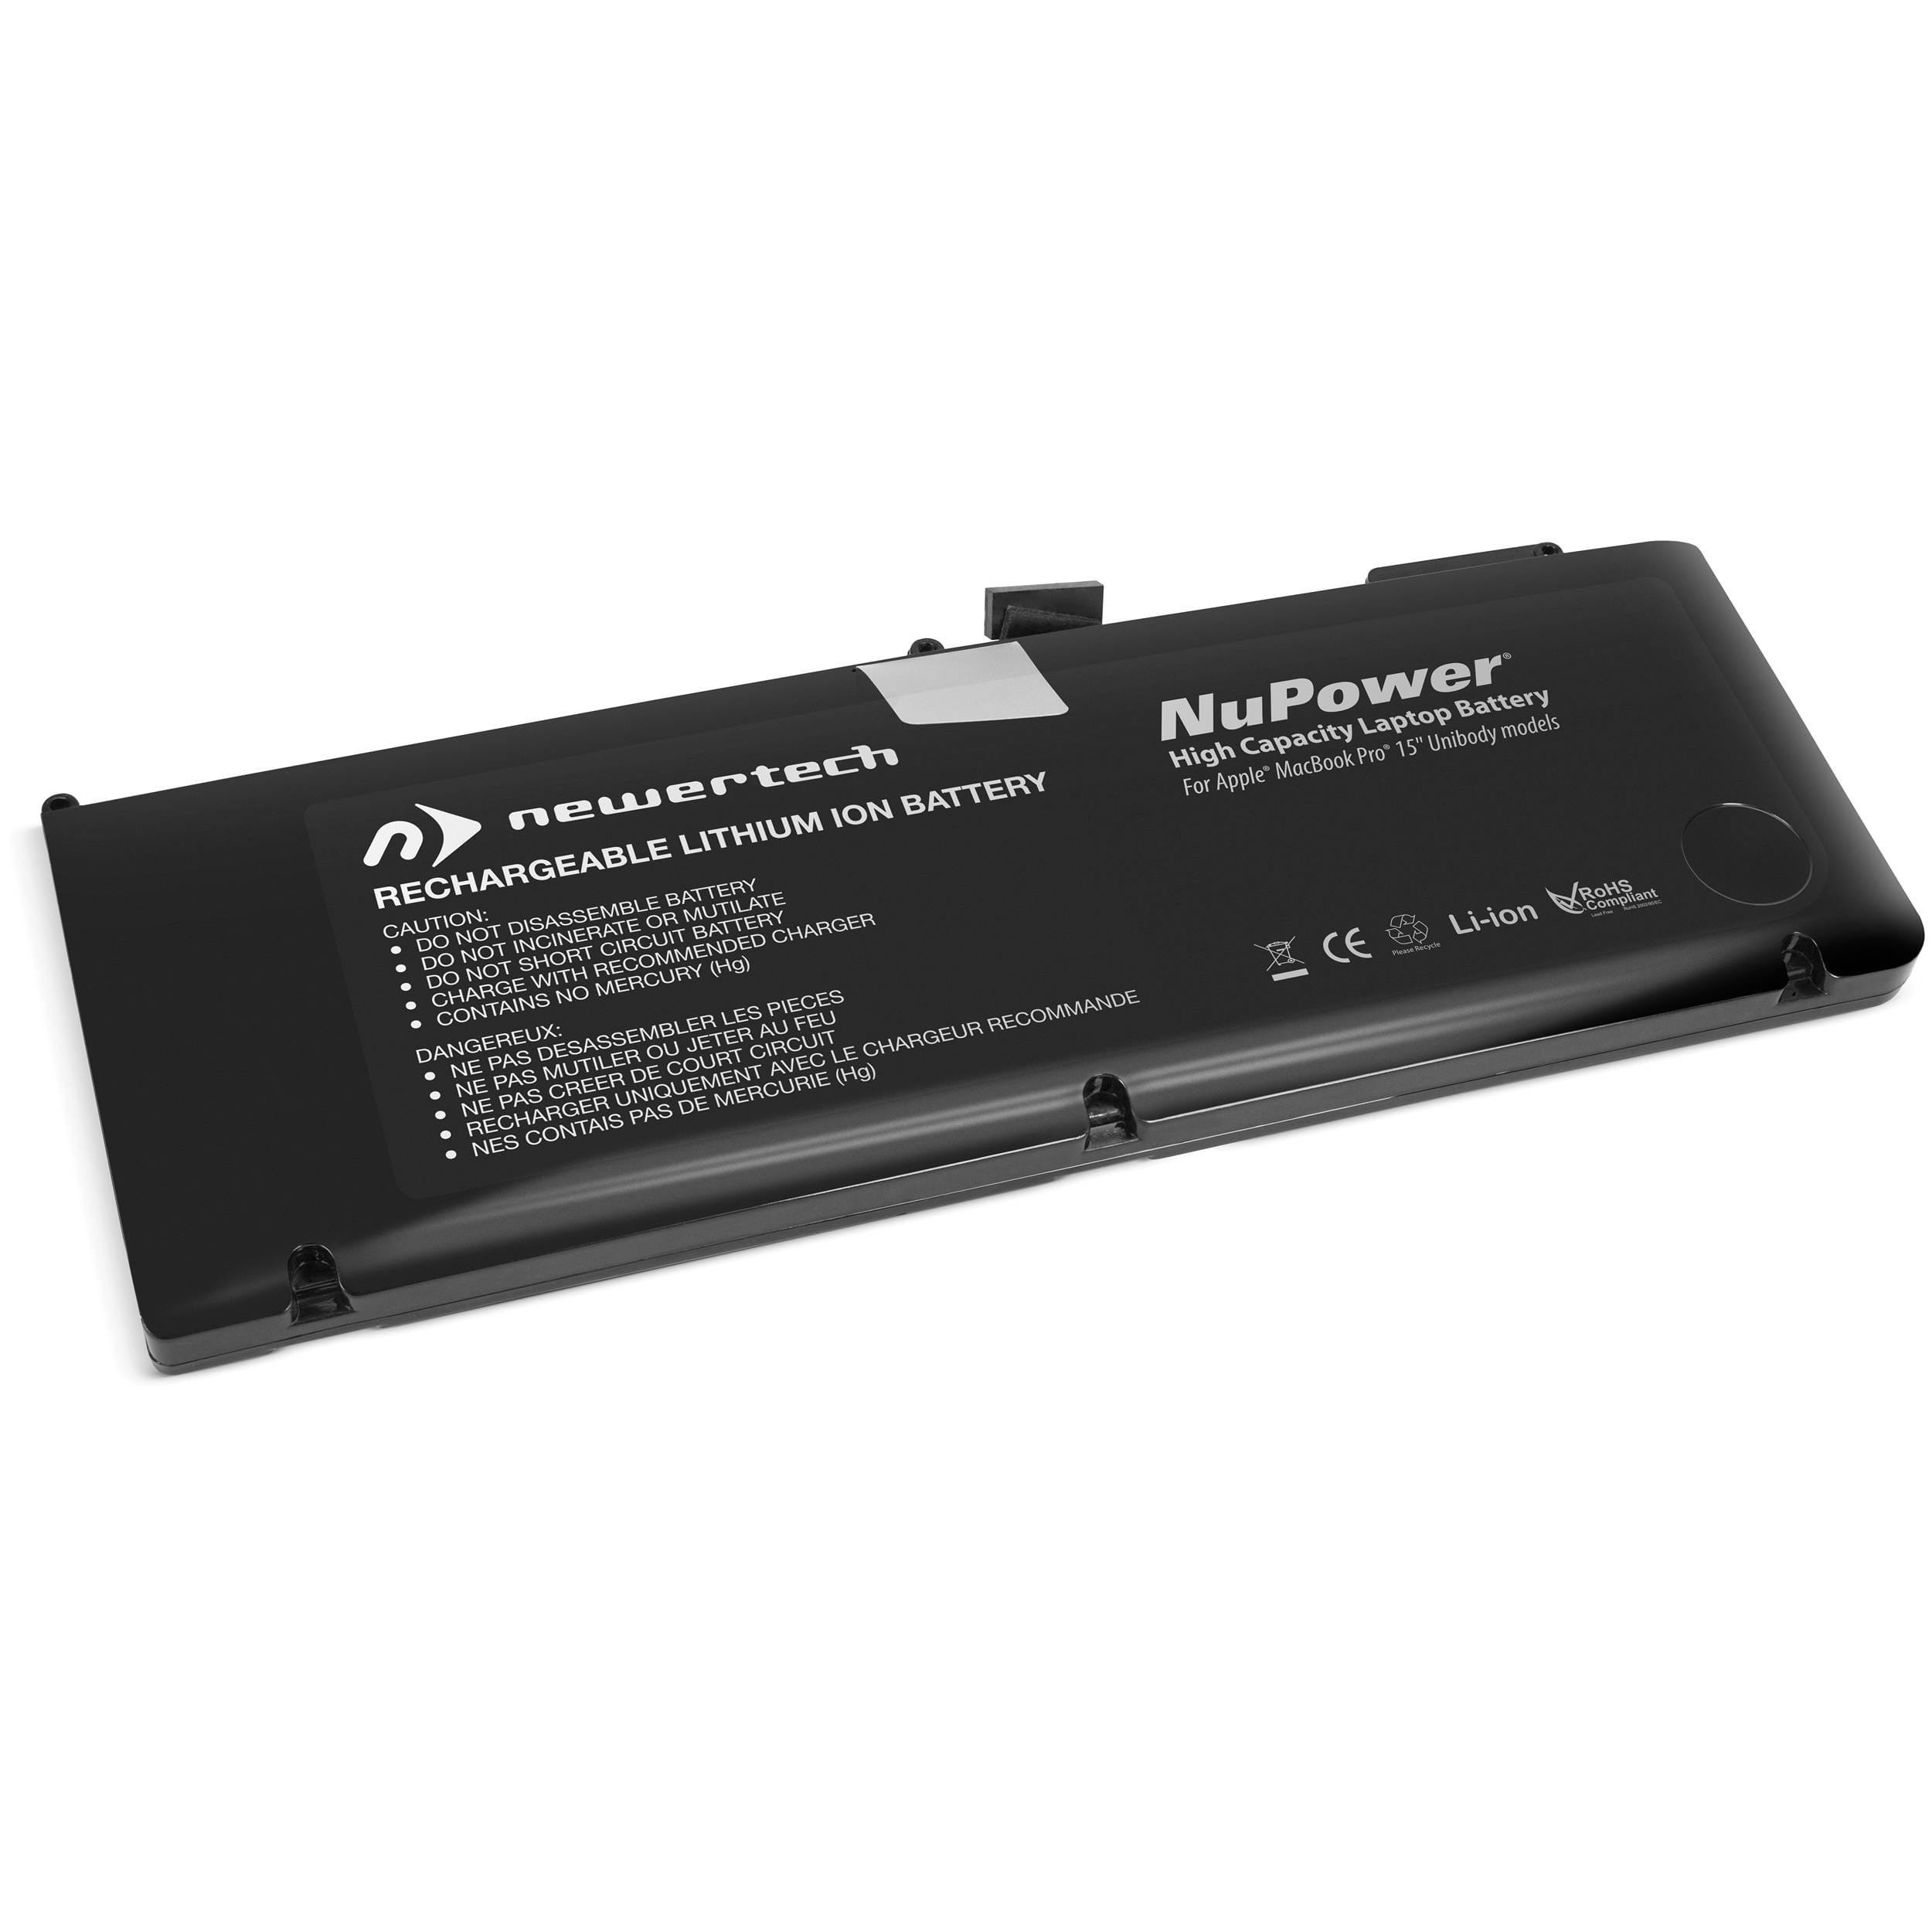 NewerTech NuPower 85 Watt-Hour Battery for MacBook Pro 15-inch Unibody Mid-2009 and Mid-2010 Models, NWTBAP15MBU85N